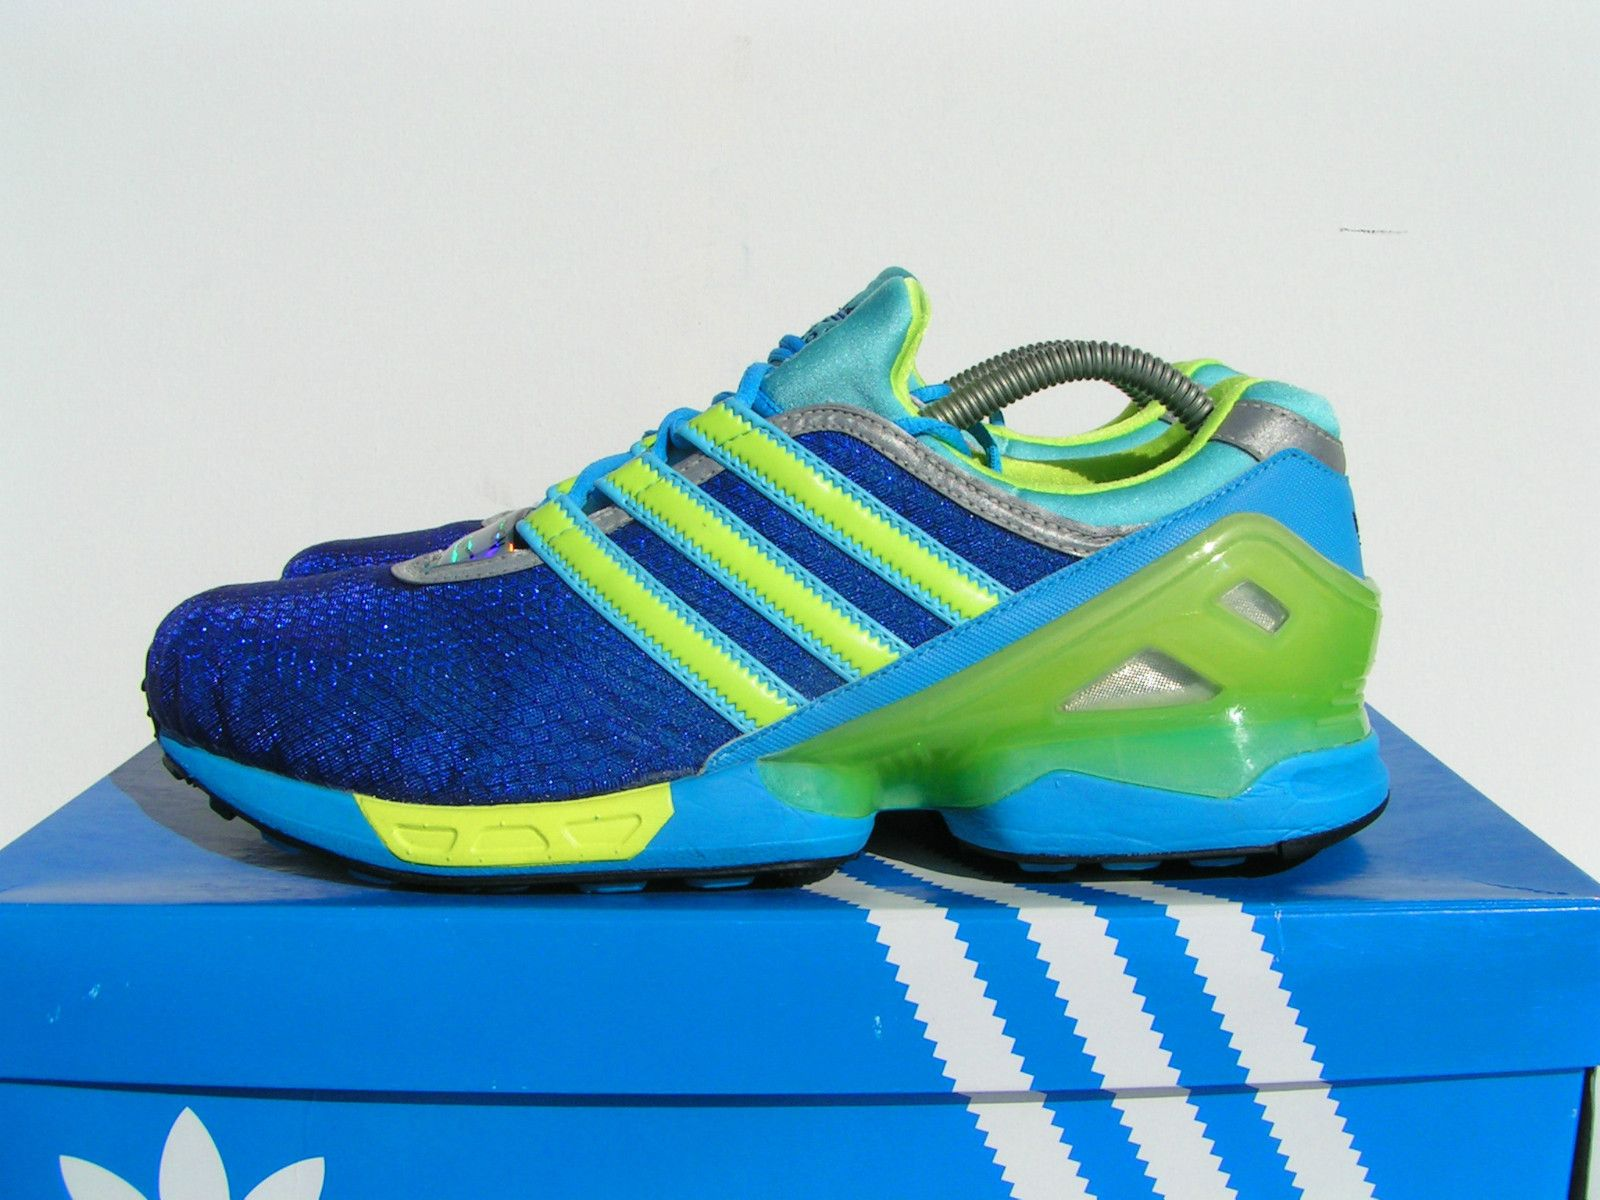 88c86d7eb Adidas ZX Marathon Gr. 42 8000 Equipment Torsion Support 8000 Cushion  Micropacer